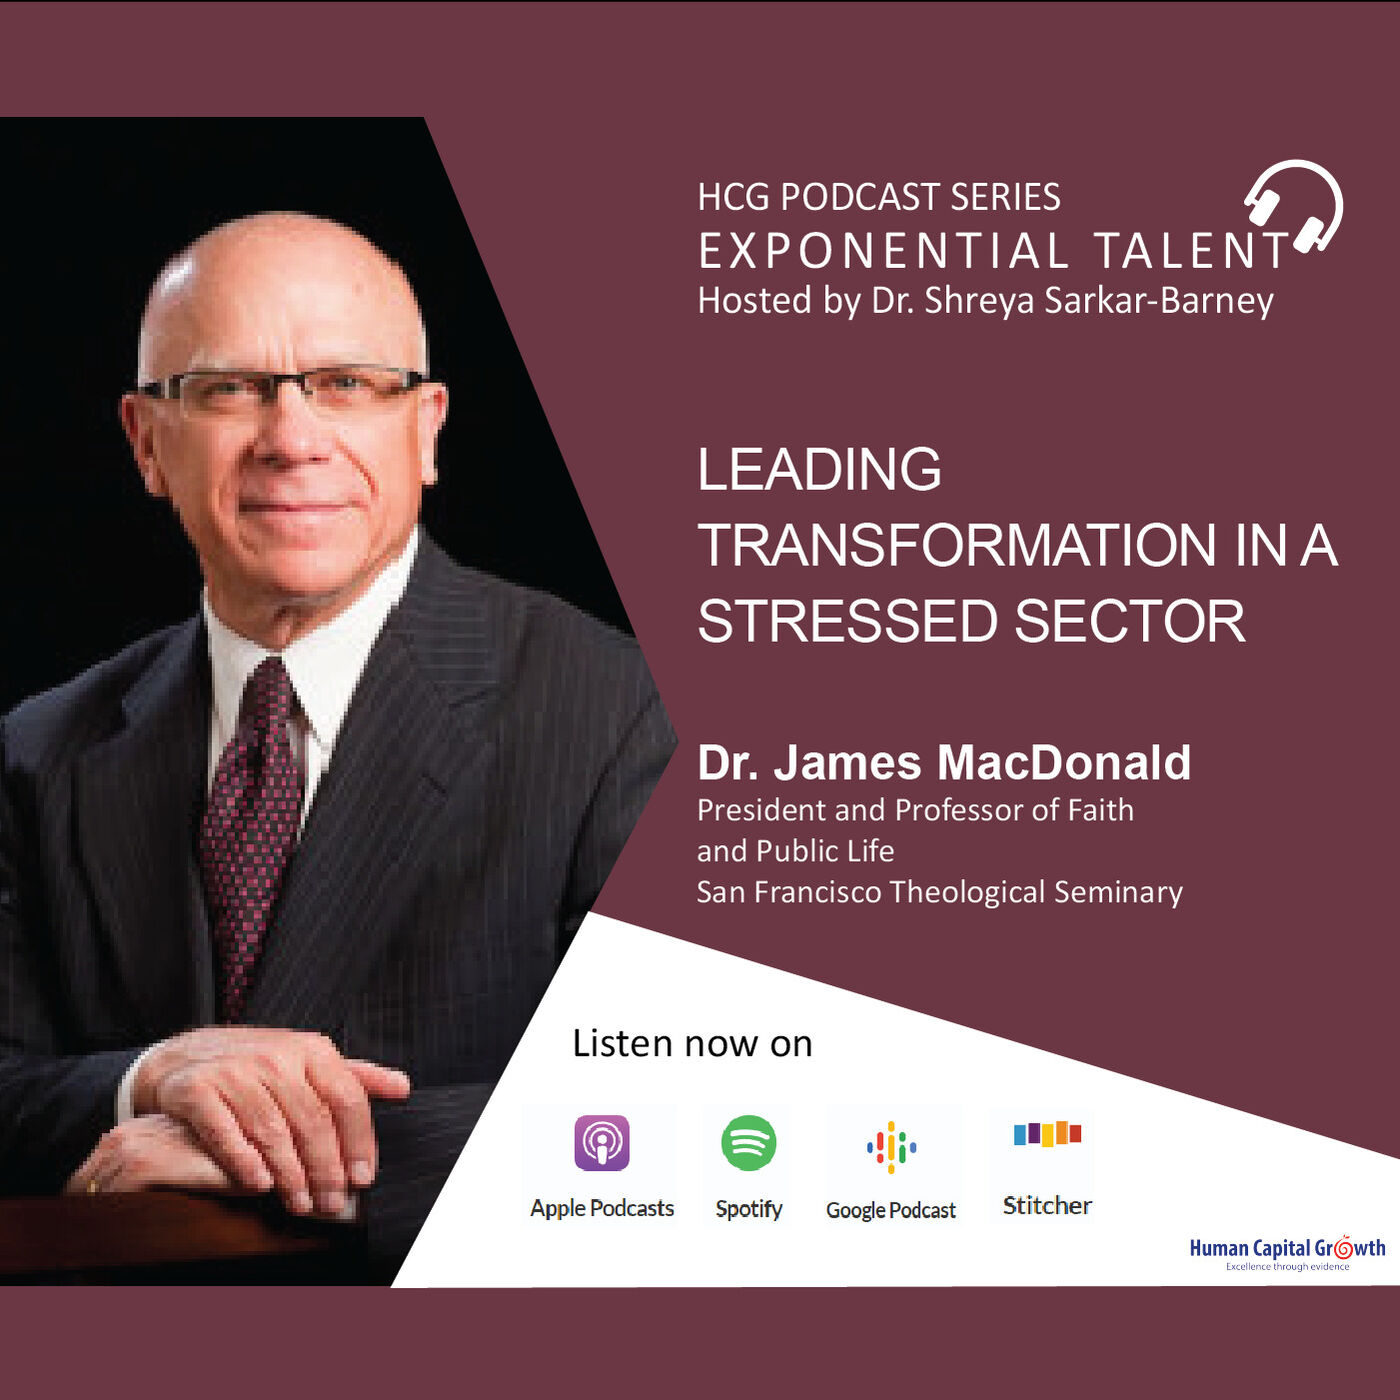 Leading Transformation in a Stressed Sector